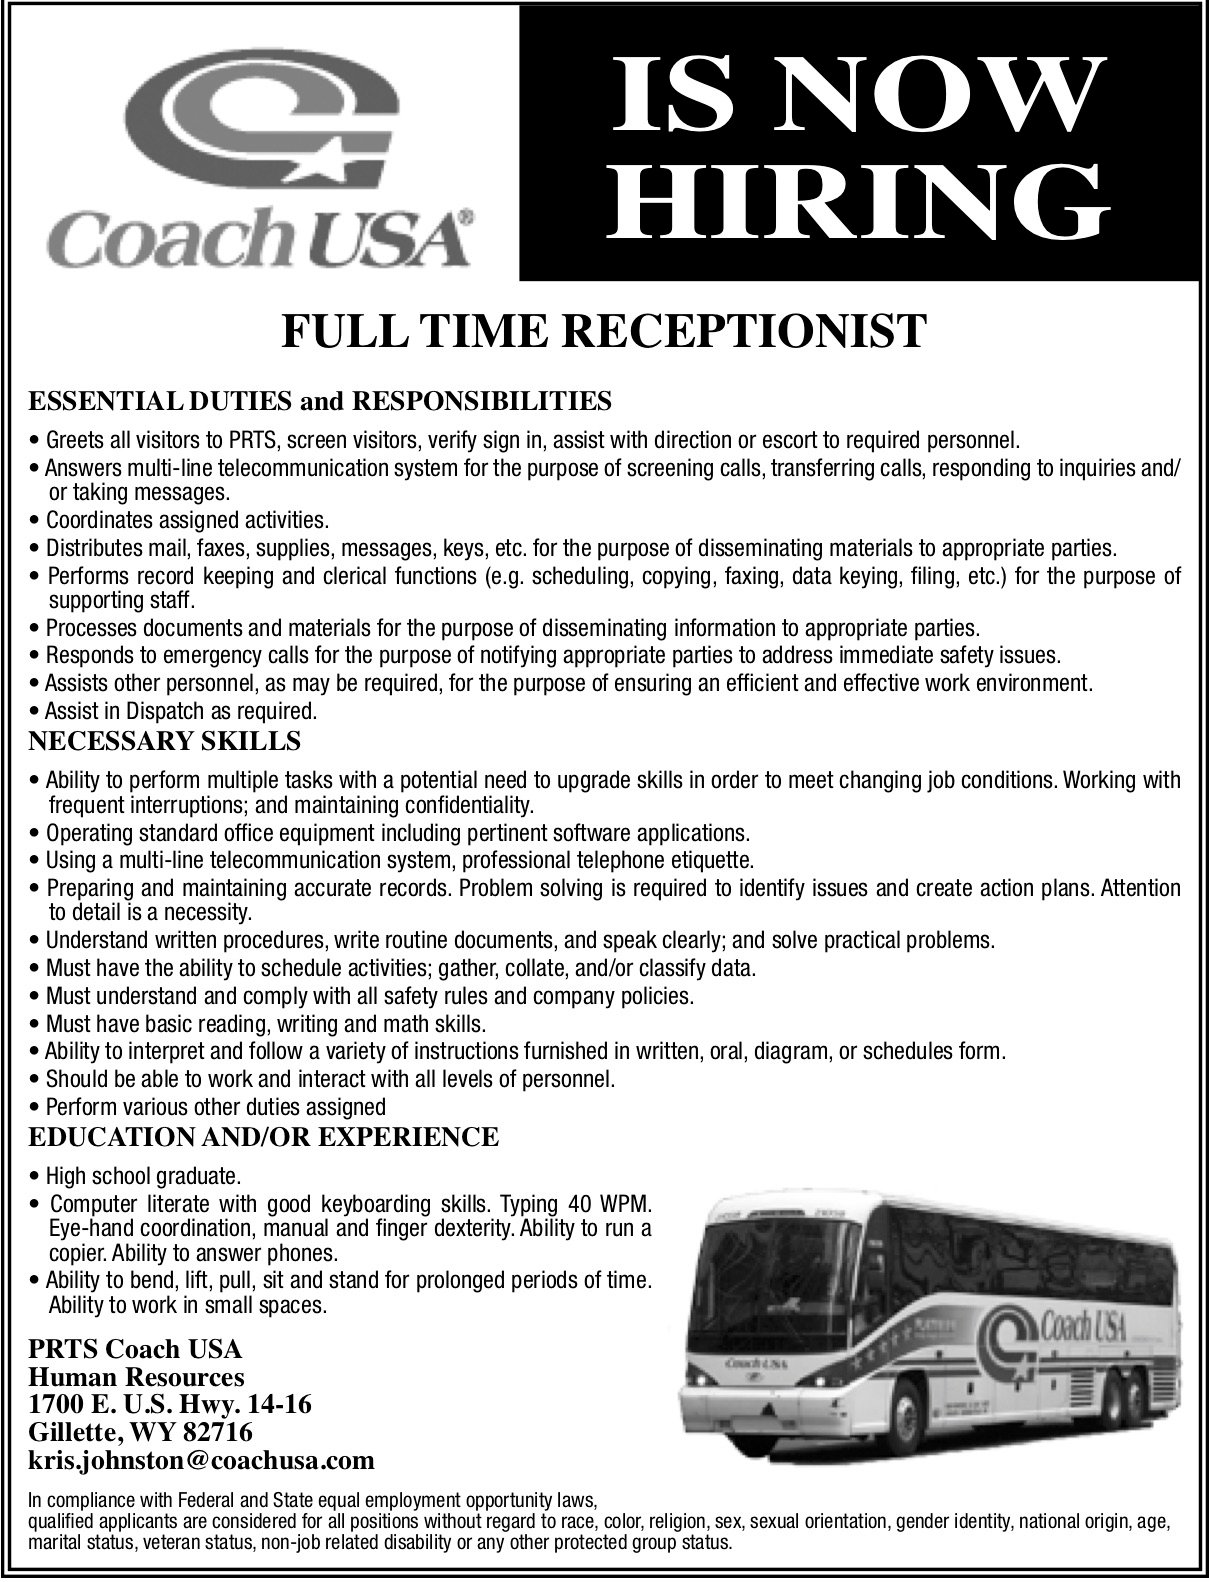 Coach, USA - Receptionist